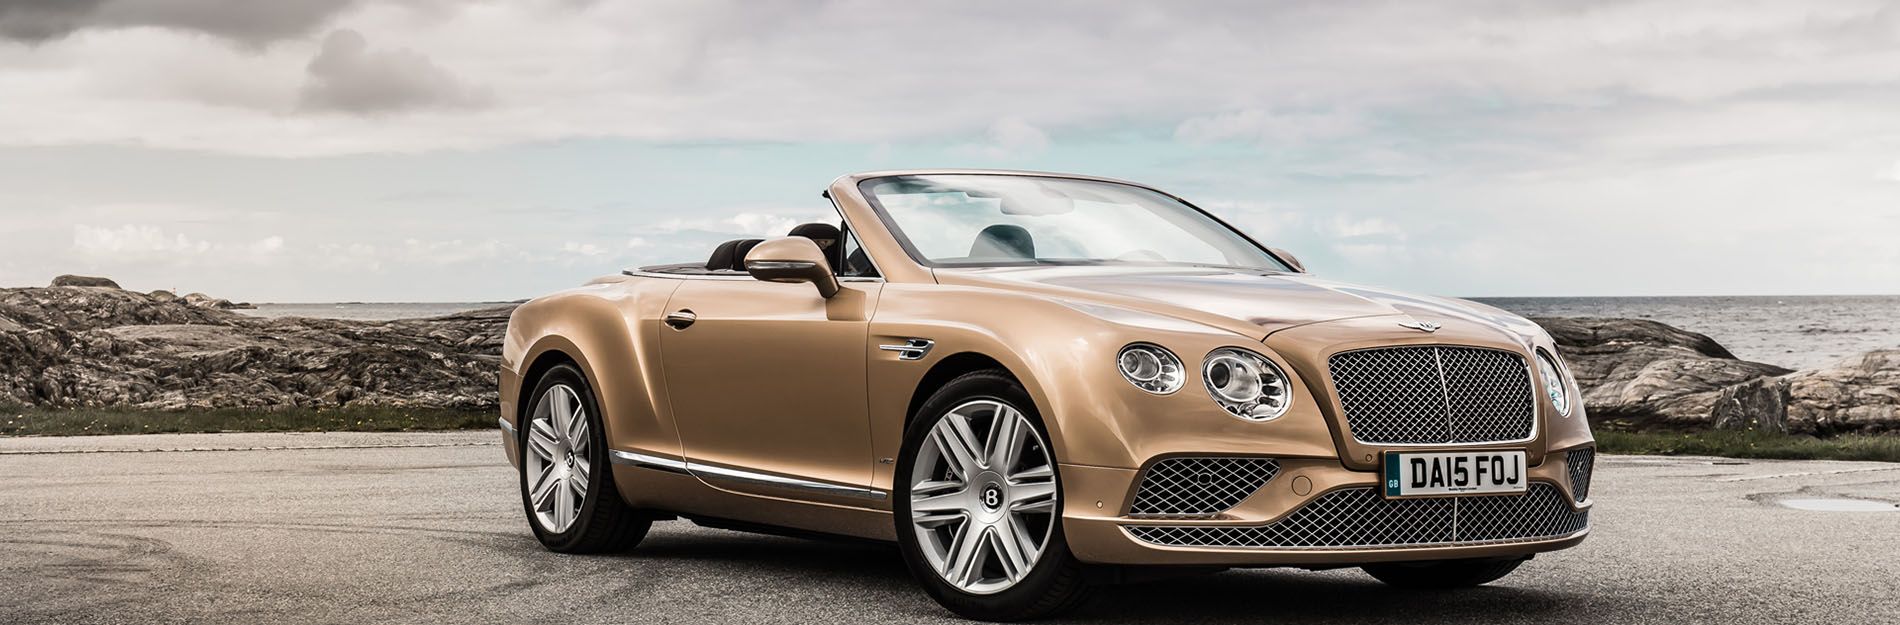 bentley continental gt cabrio mieten. Black Bedroom Furniture Sets. Home Design Ideas